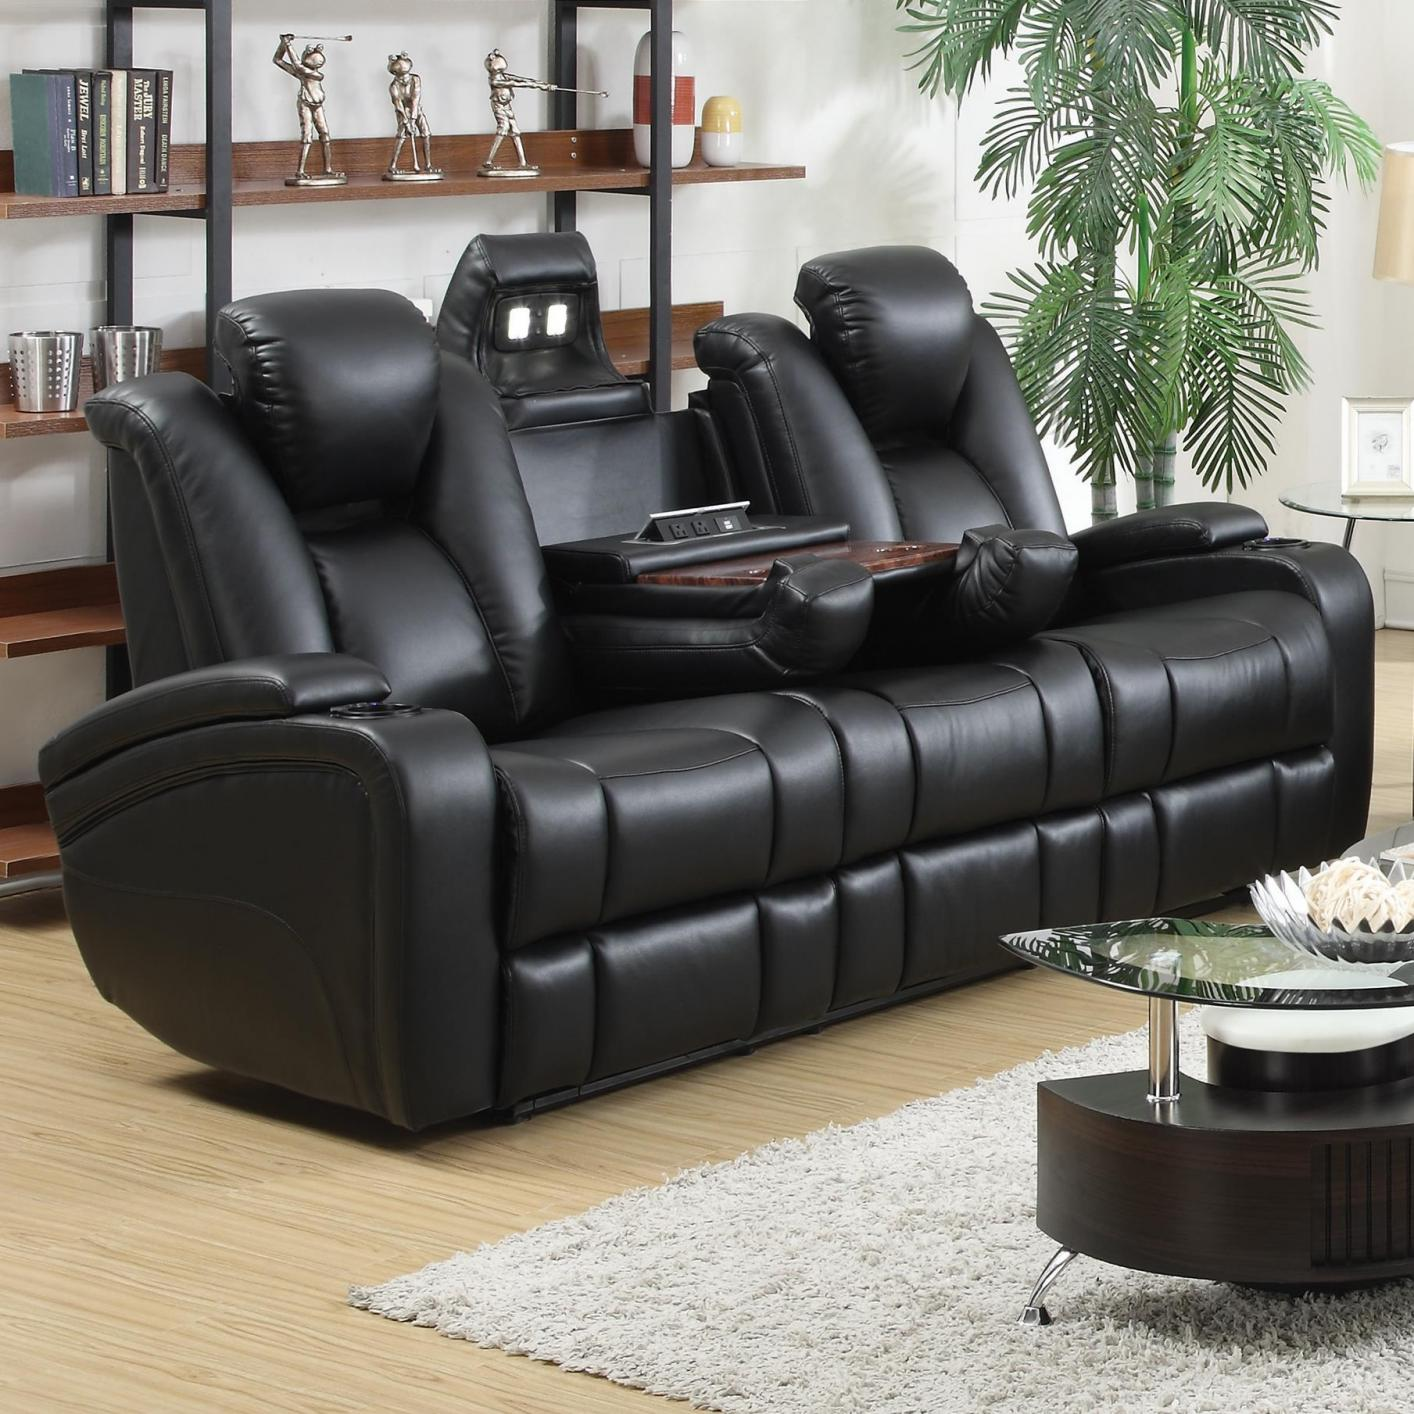 black leather power reclining sofa - steal-a-sofa furniture outlet